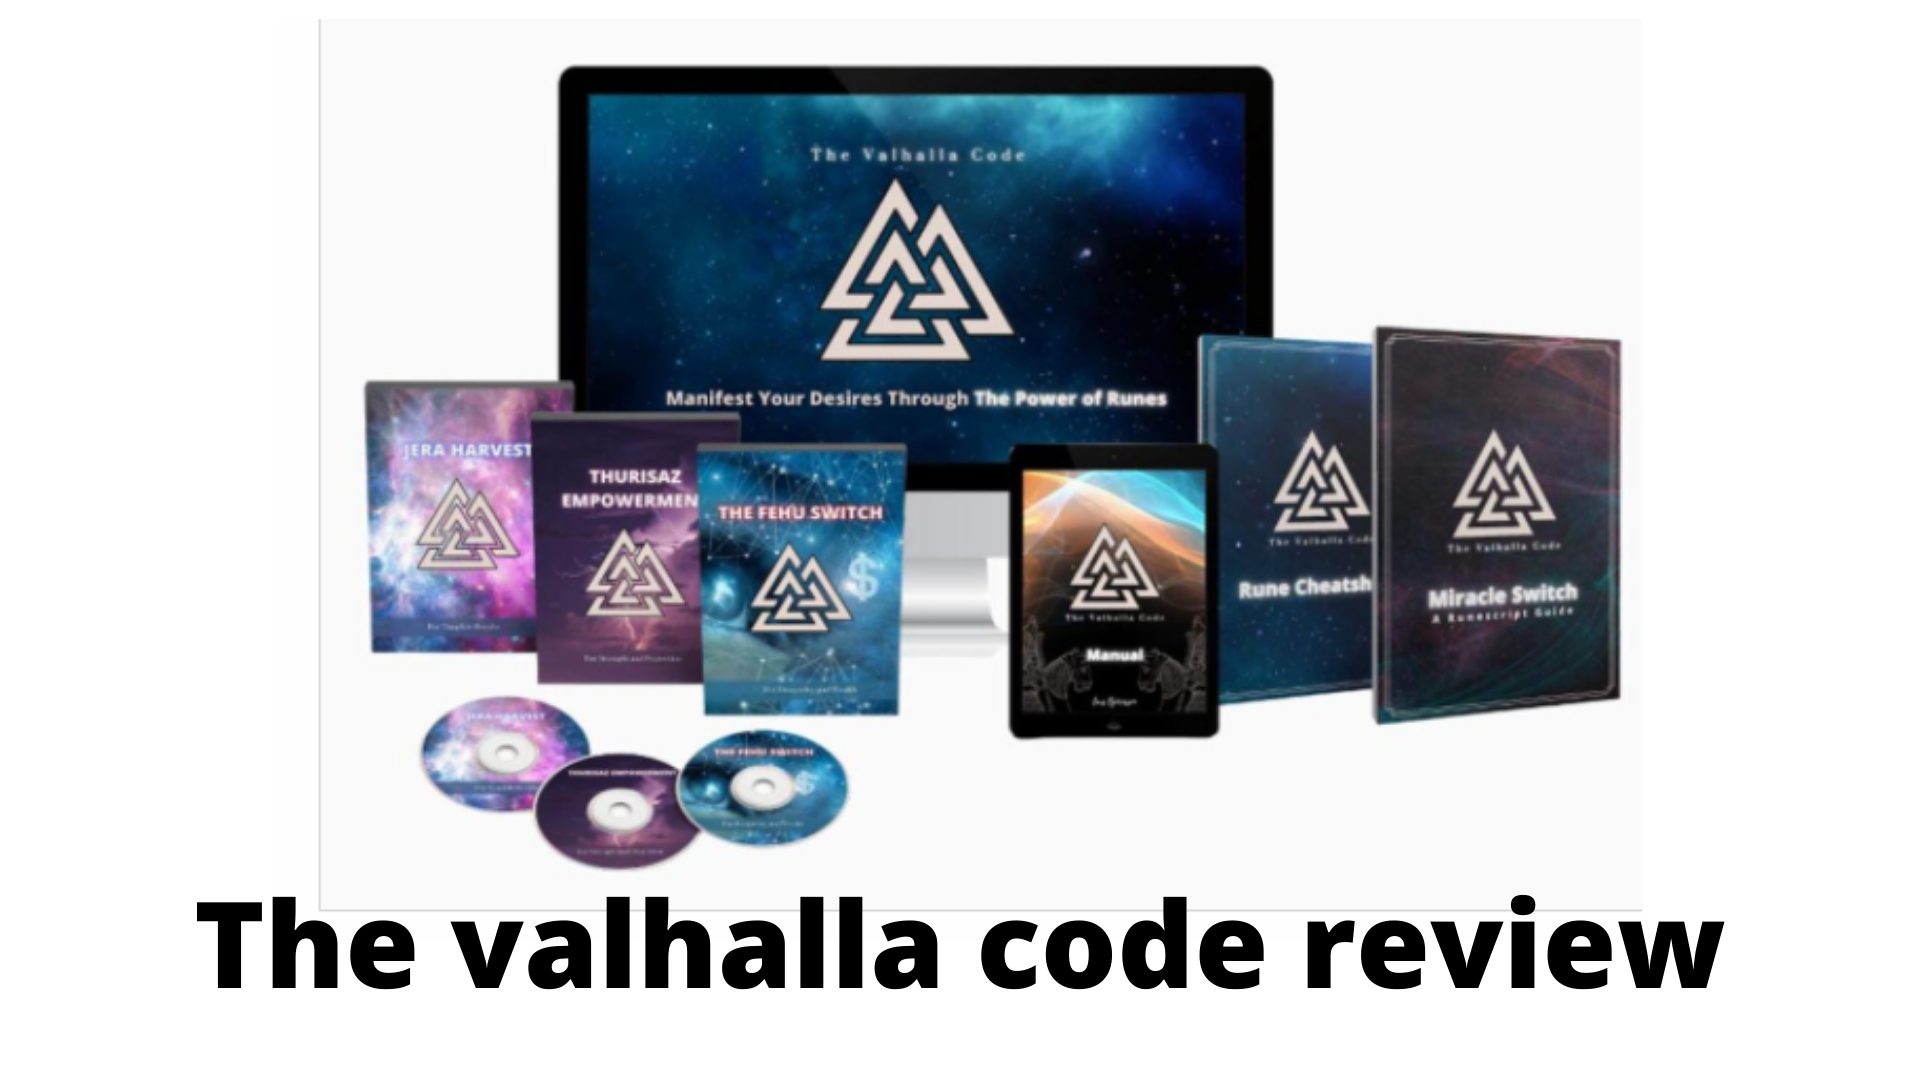 The valhalla code review-Should you try this?